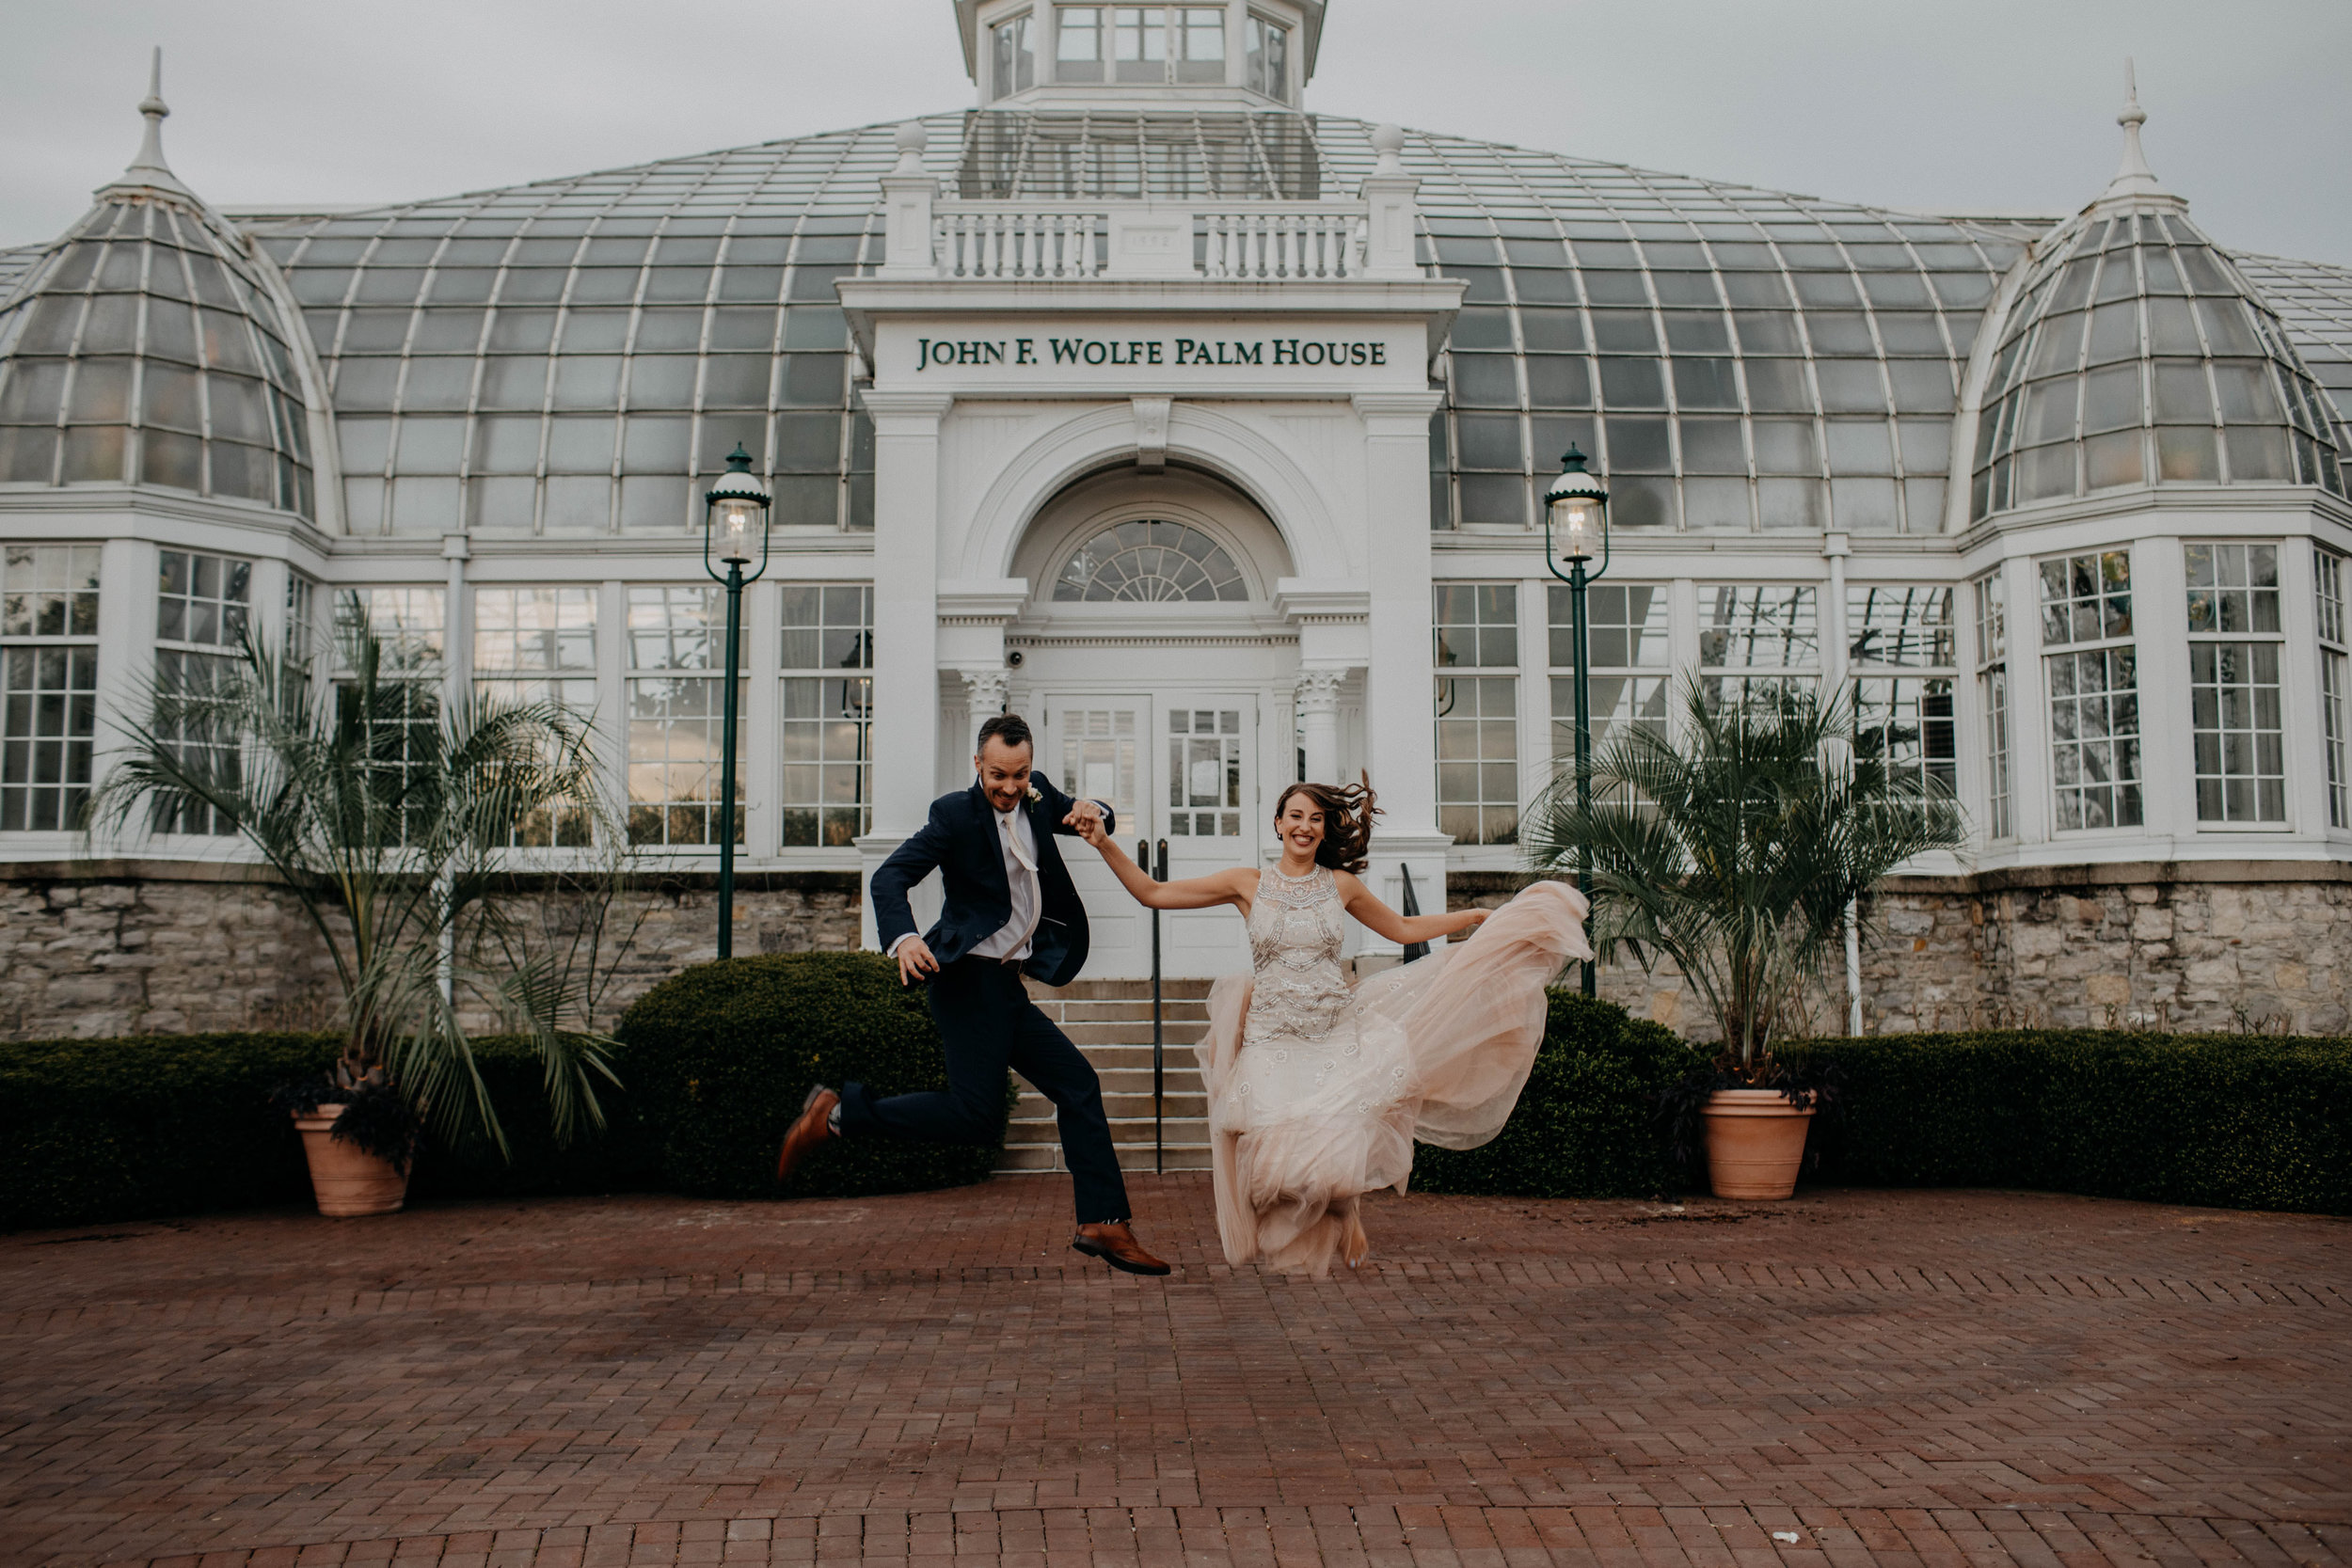 franklin park conservatory wedding columbus ohio wedding photographer grace e jones photography166.jpg